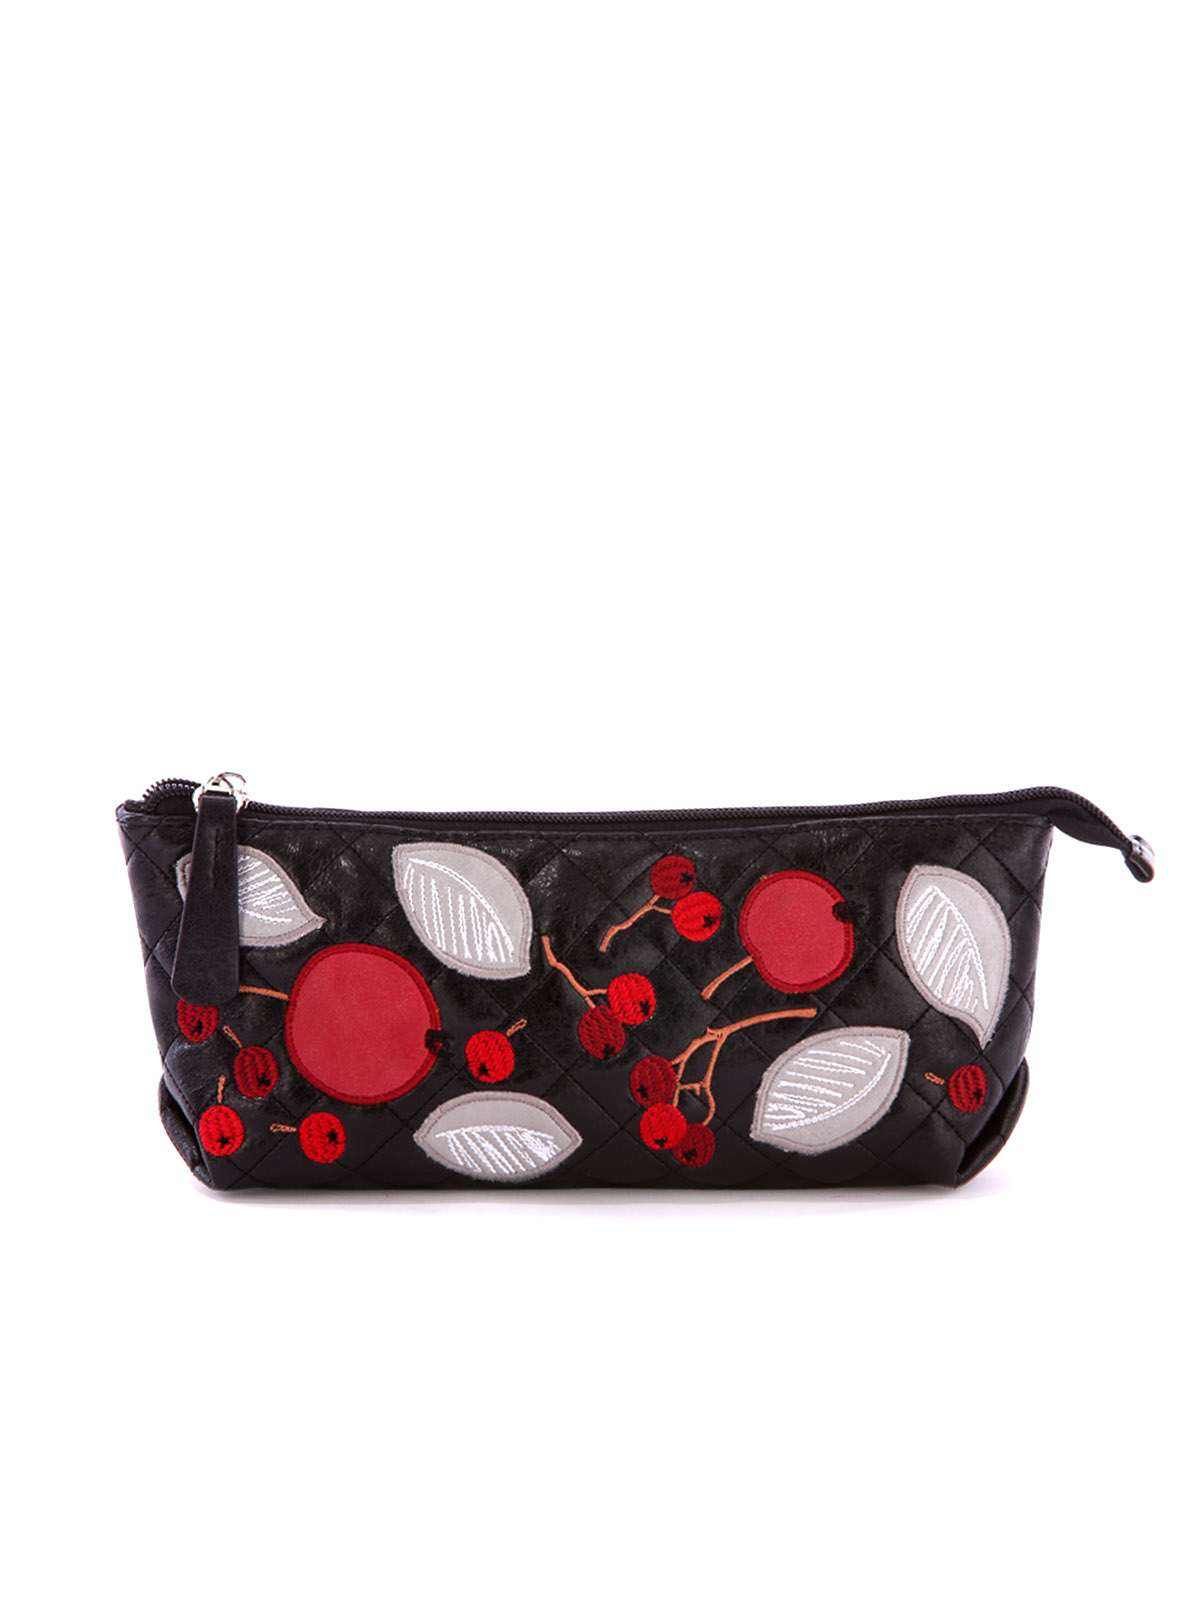 https://alba-soboni.ua/images/store/product-ru/womens-cosmetics-2017-cosmetic-bag-961-black-1.jpg